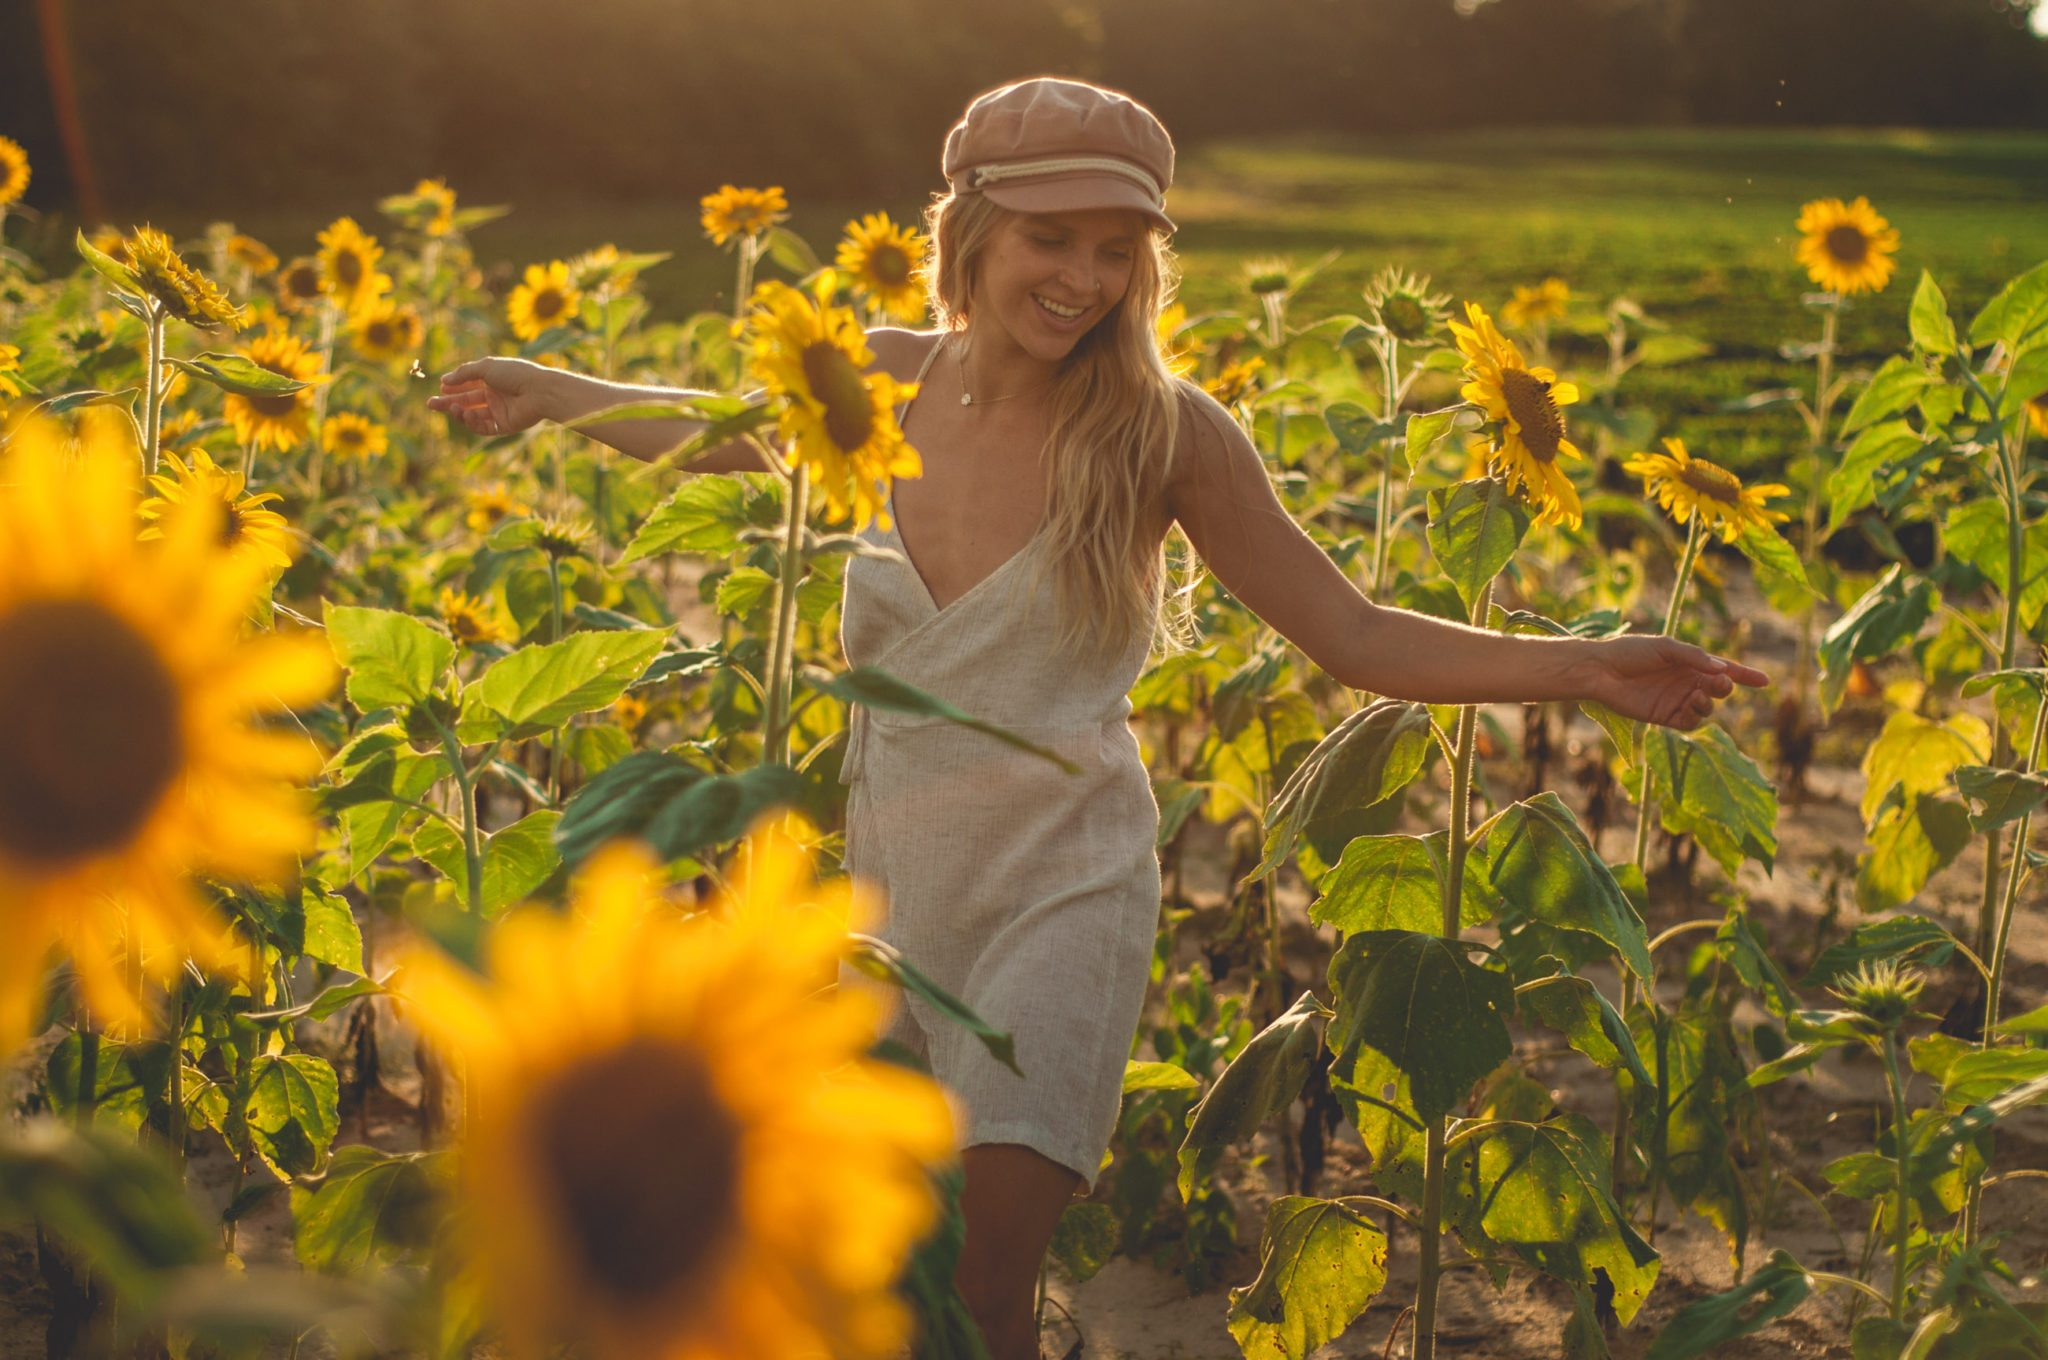 Megan Rae dancing through Holland Farm sunflower fields in July at golden hour